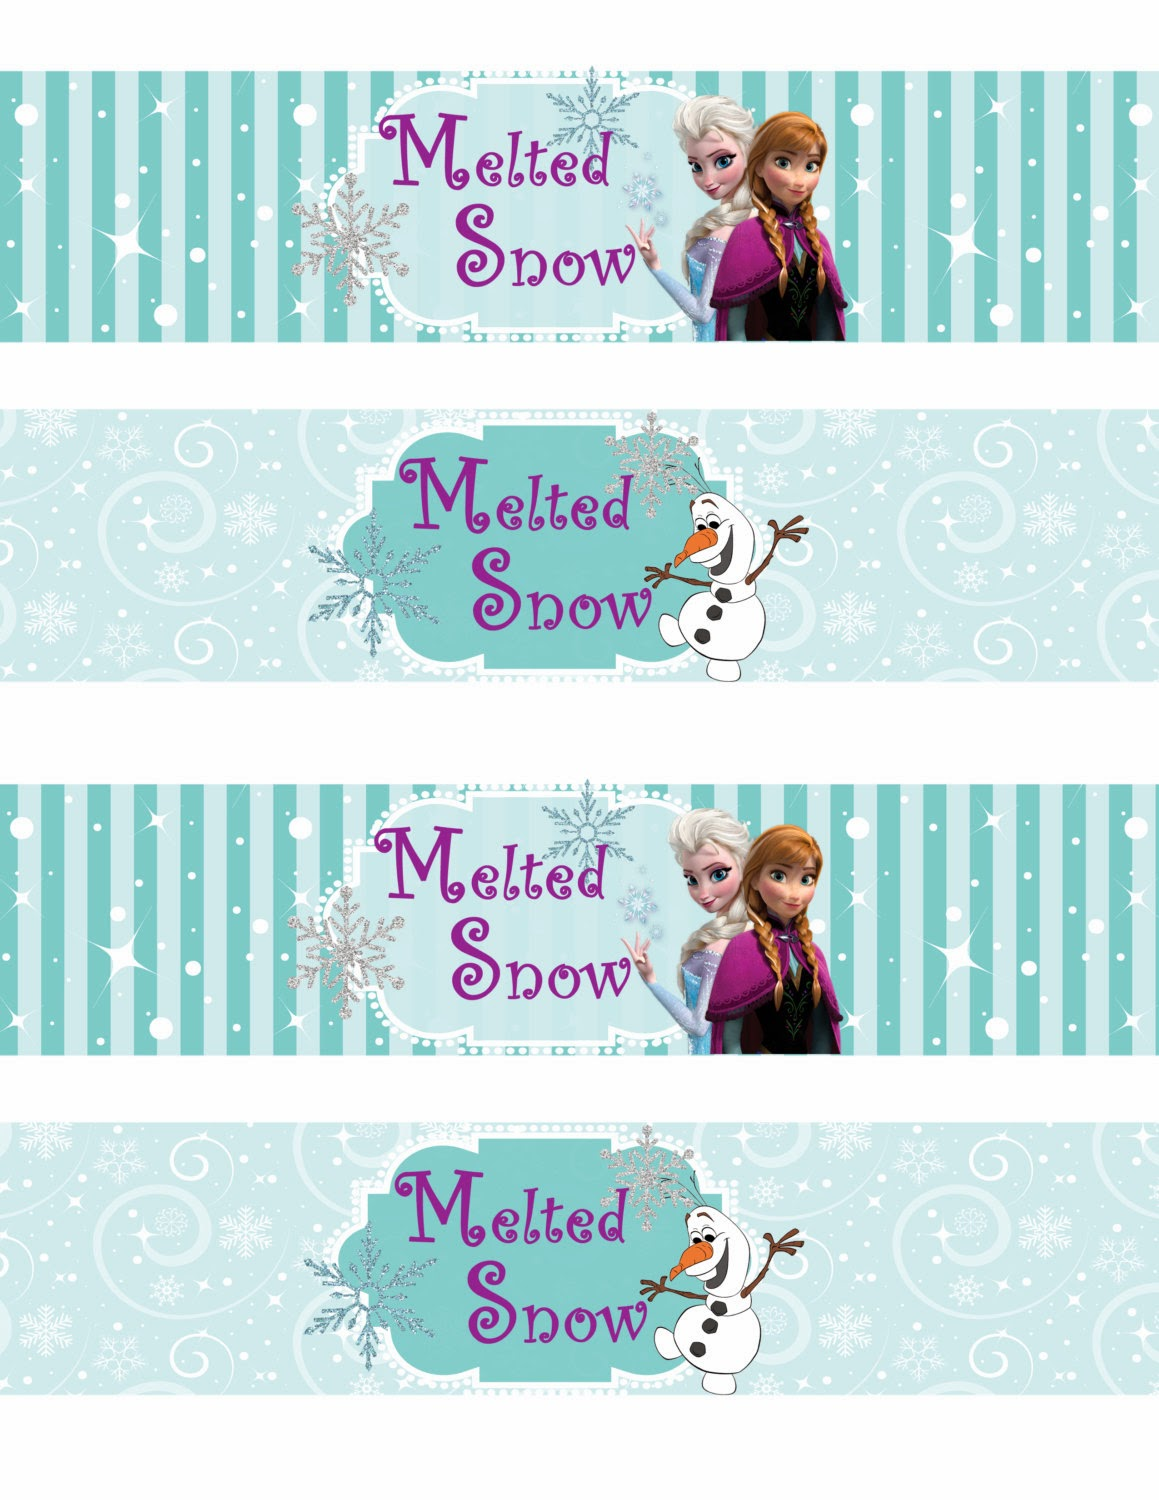 Printable Address Labels Free Brilliant Petrova Julia Petrova1028 On Pinterest